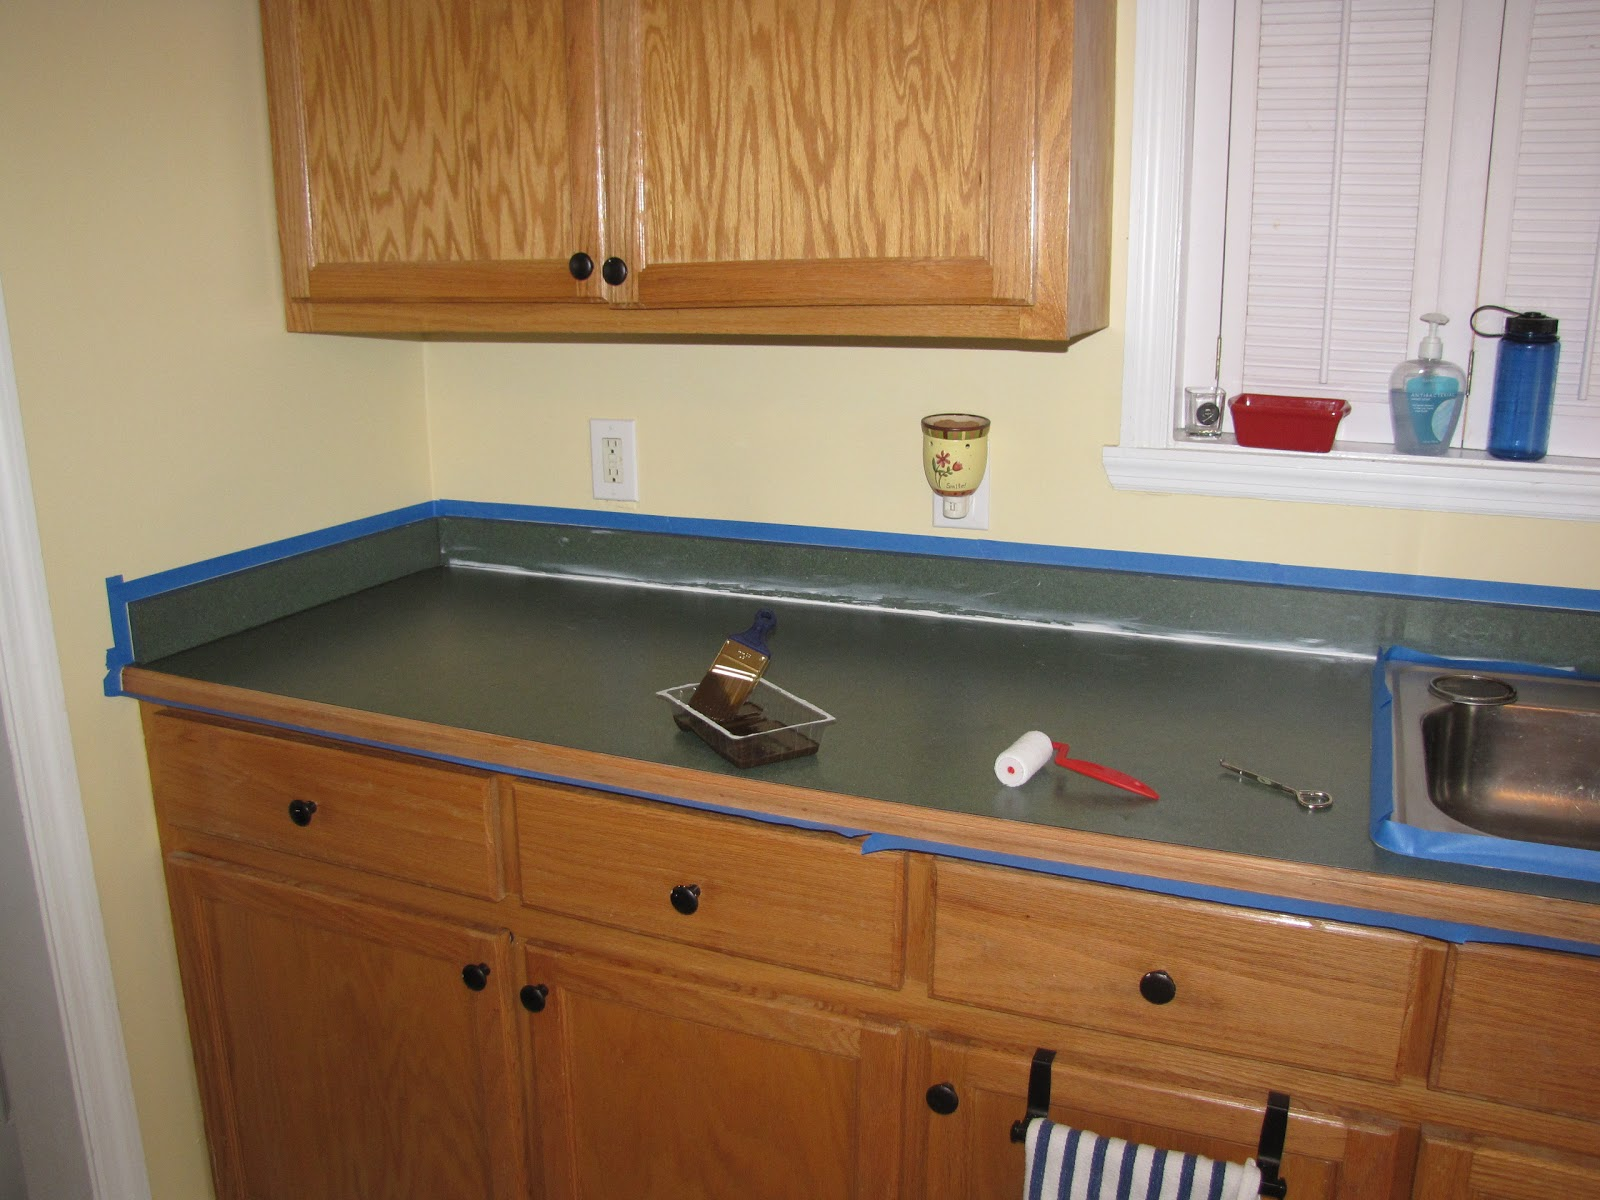 Countertop Epoxy Paint How To Use Rustoleum Countertop Paint Home Improvement